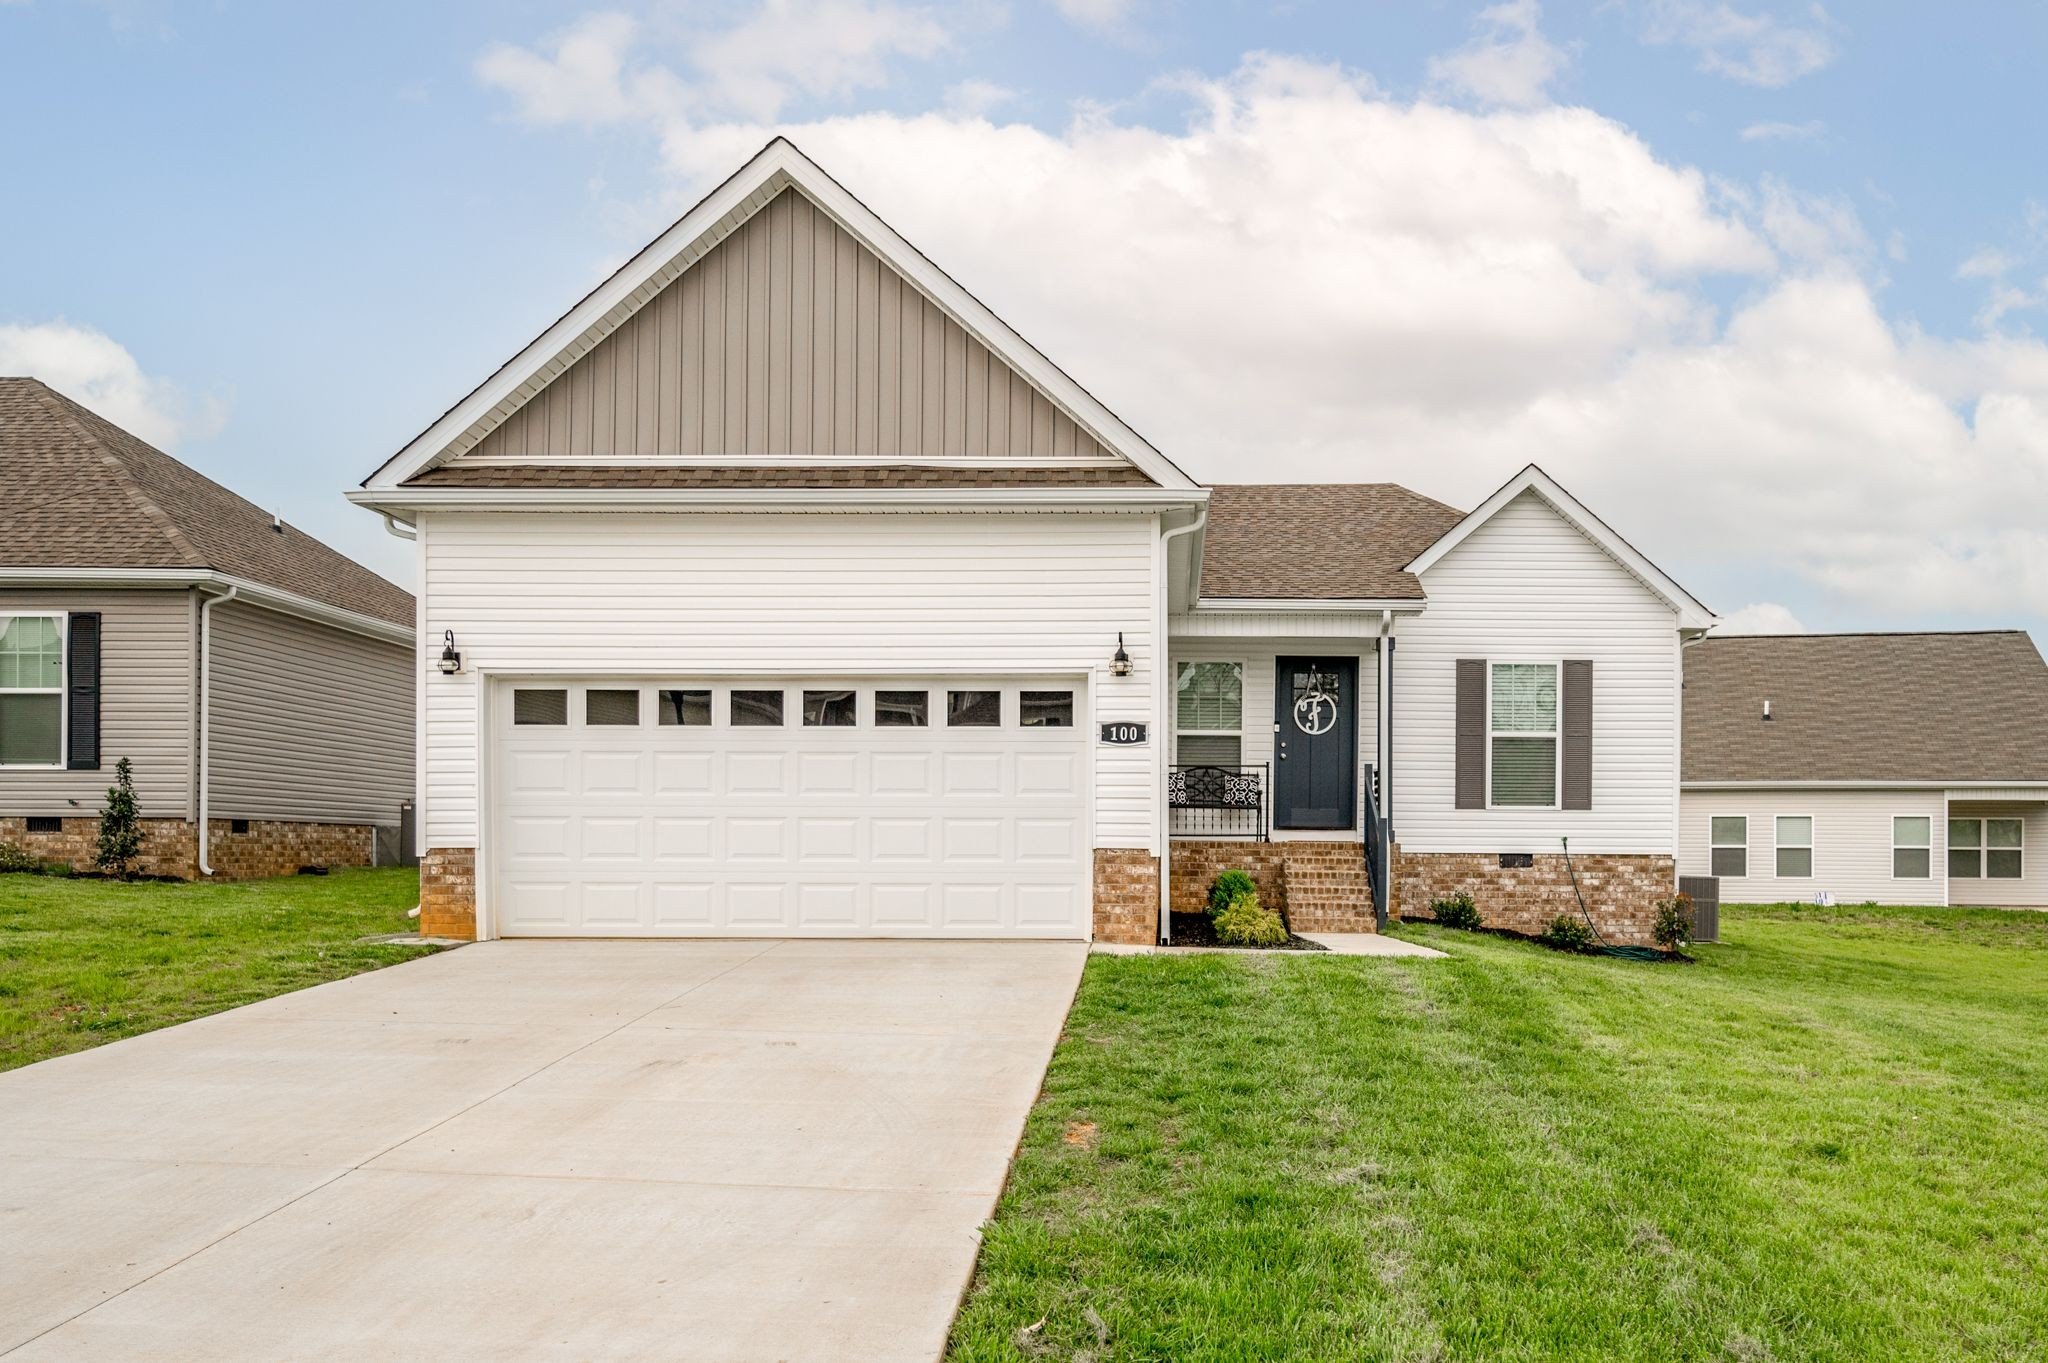 100 Annas Way Property Photo - Shelbyville, TN real estate listing